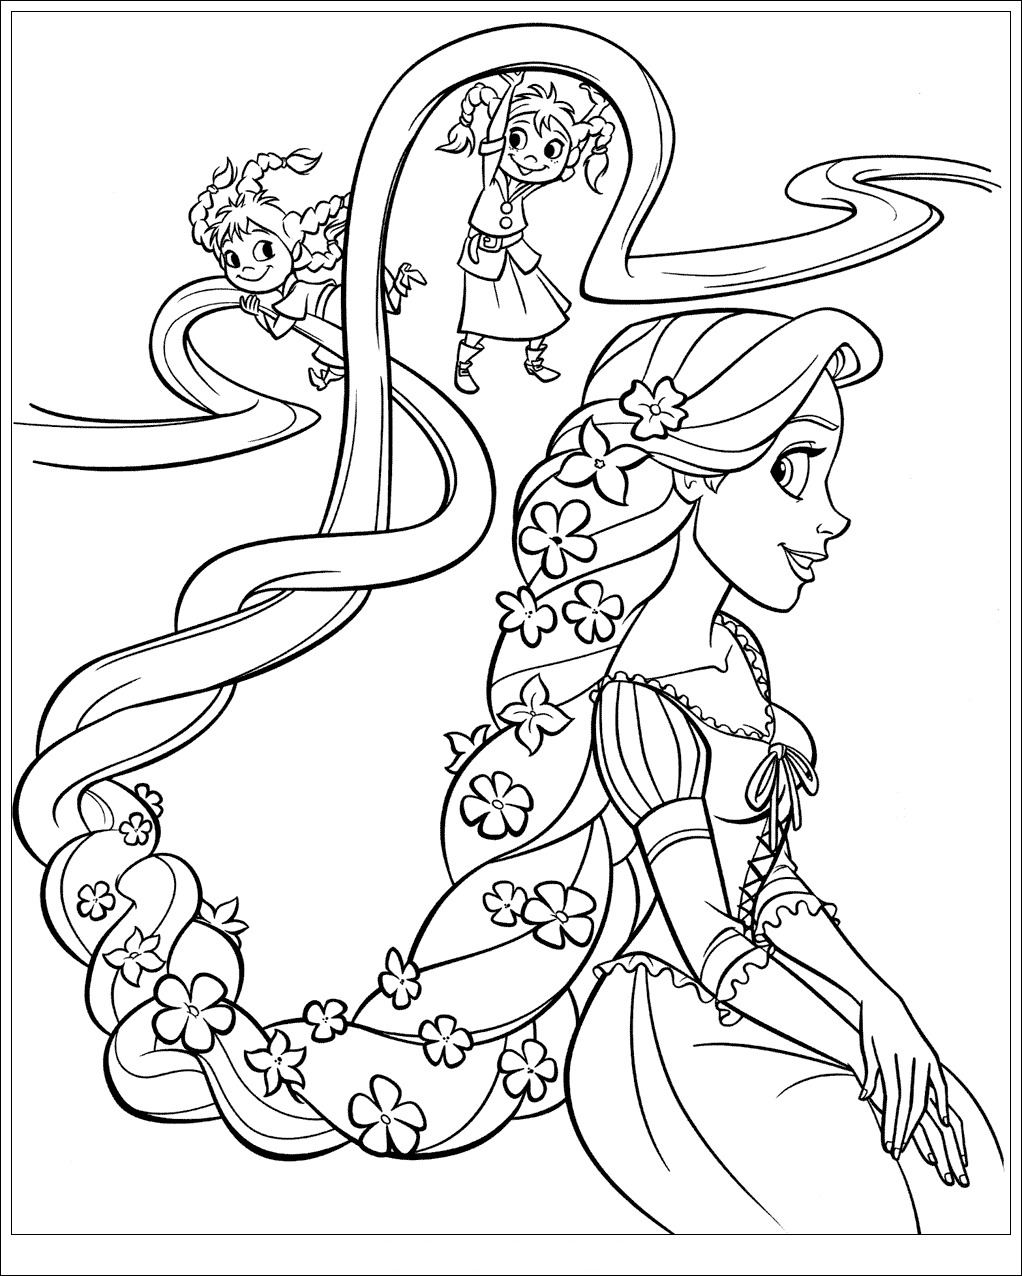 Tangled coloring page to download : Rapunzel with flowers in her hair